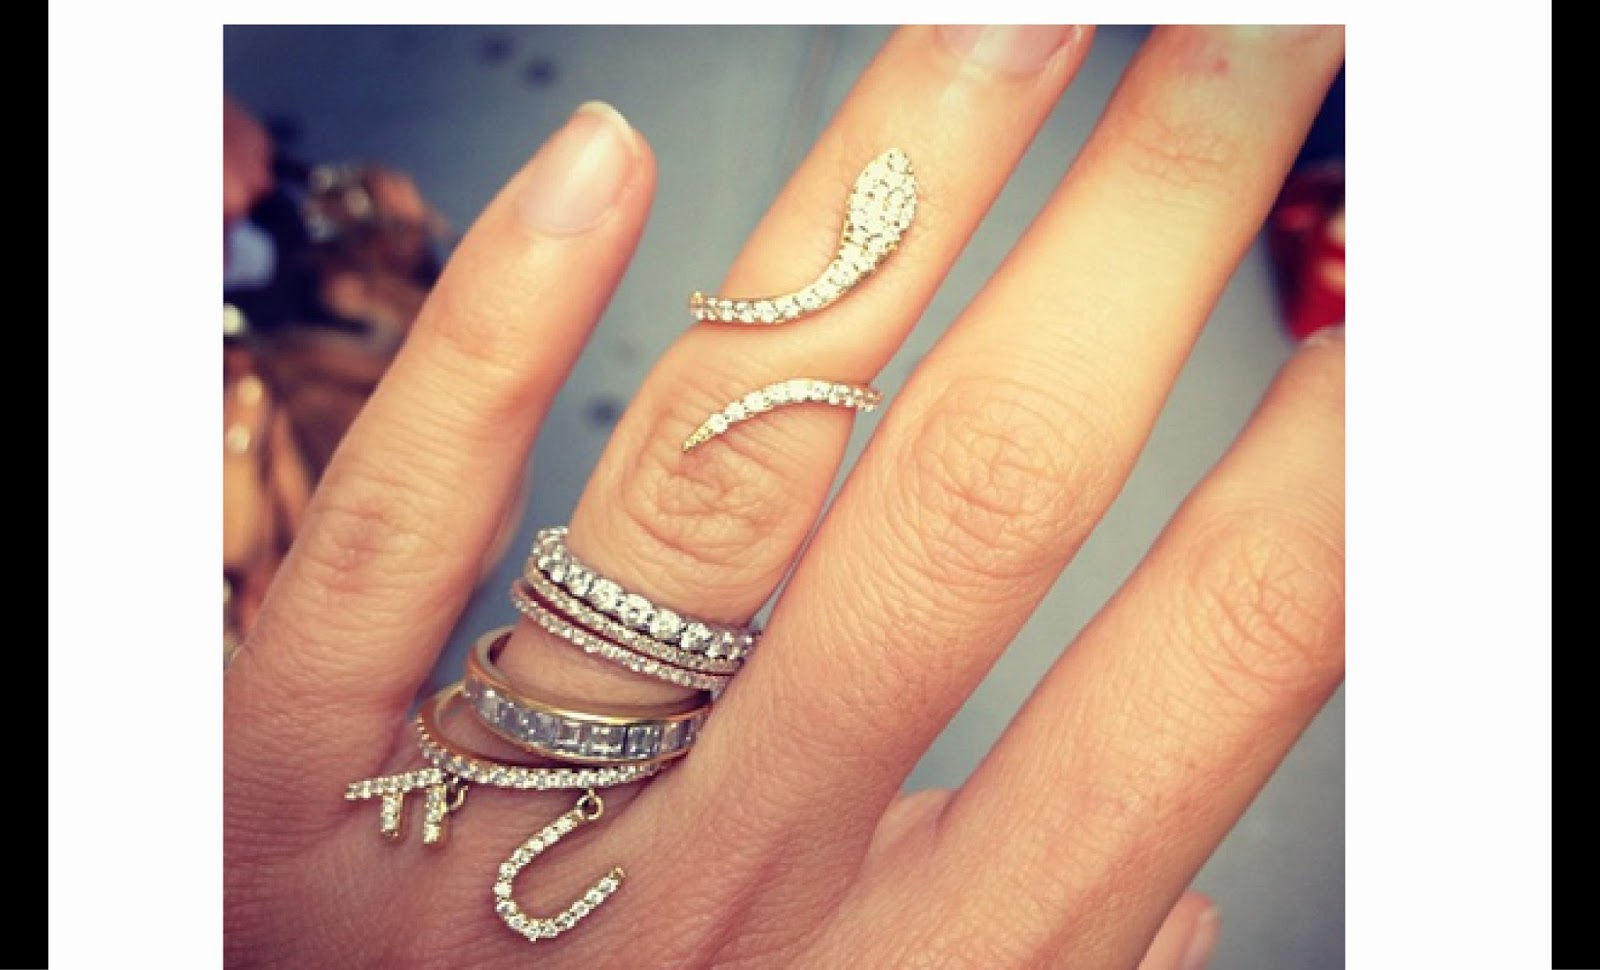 knuckle rings fuck you finger party